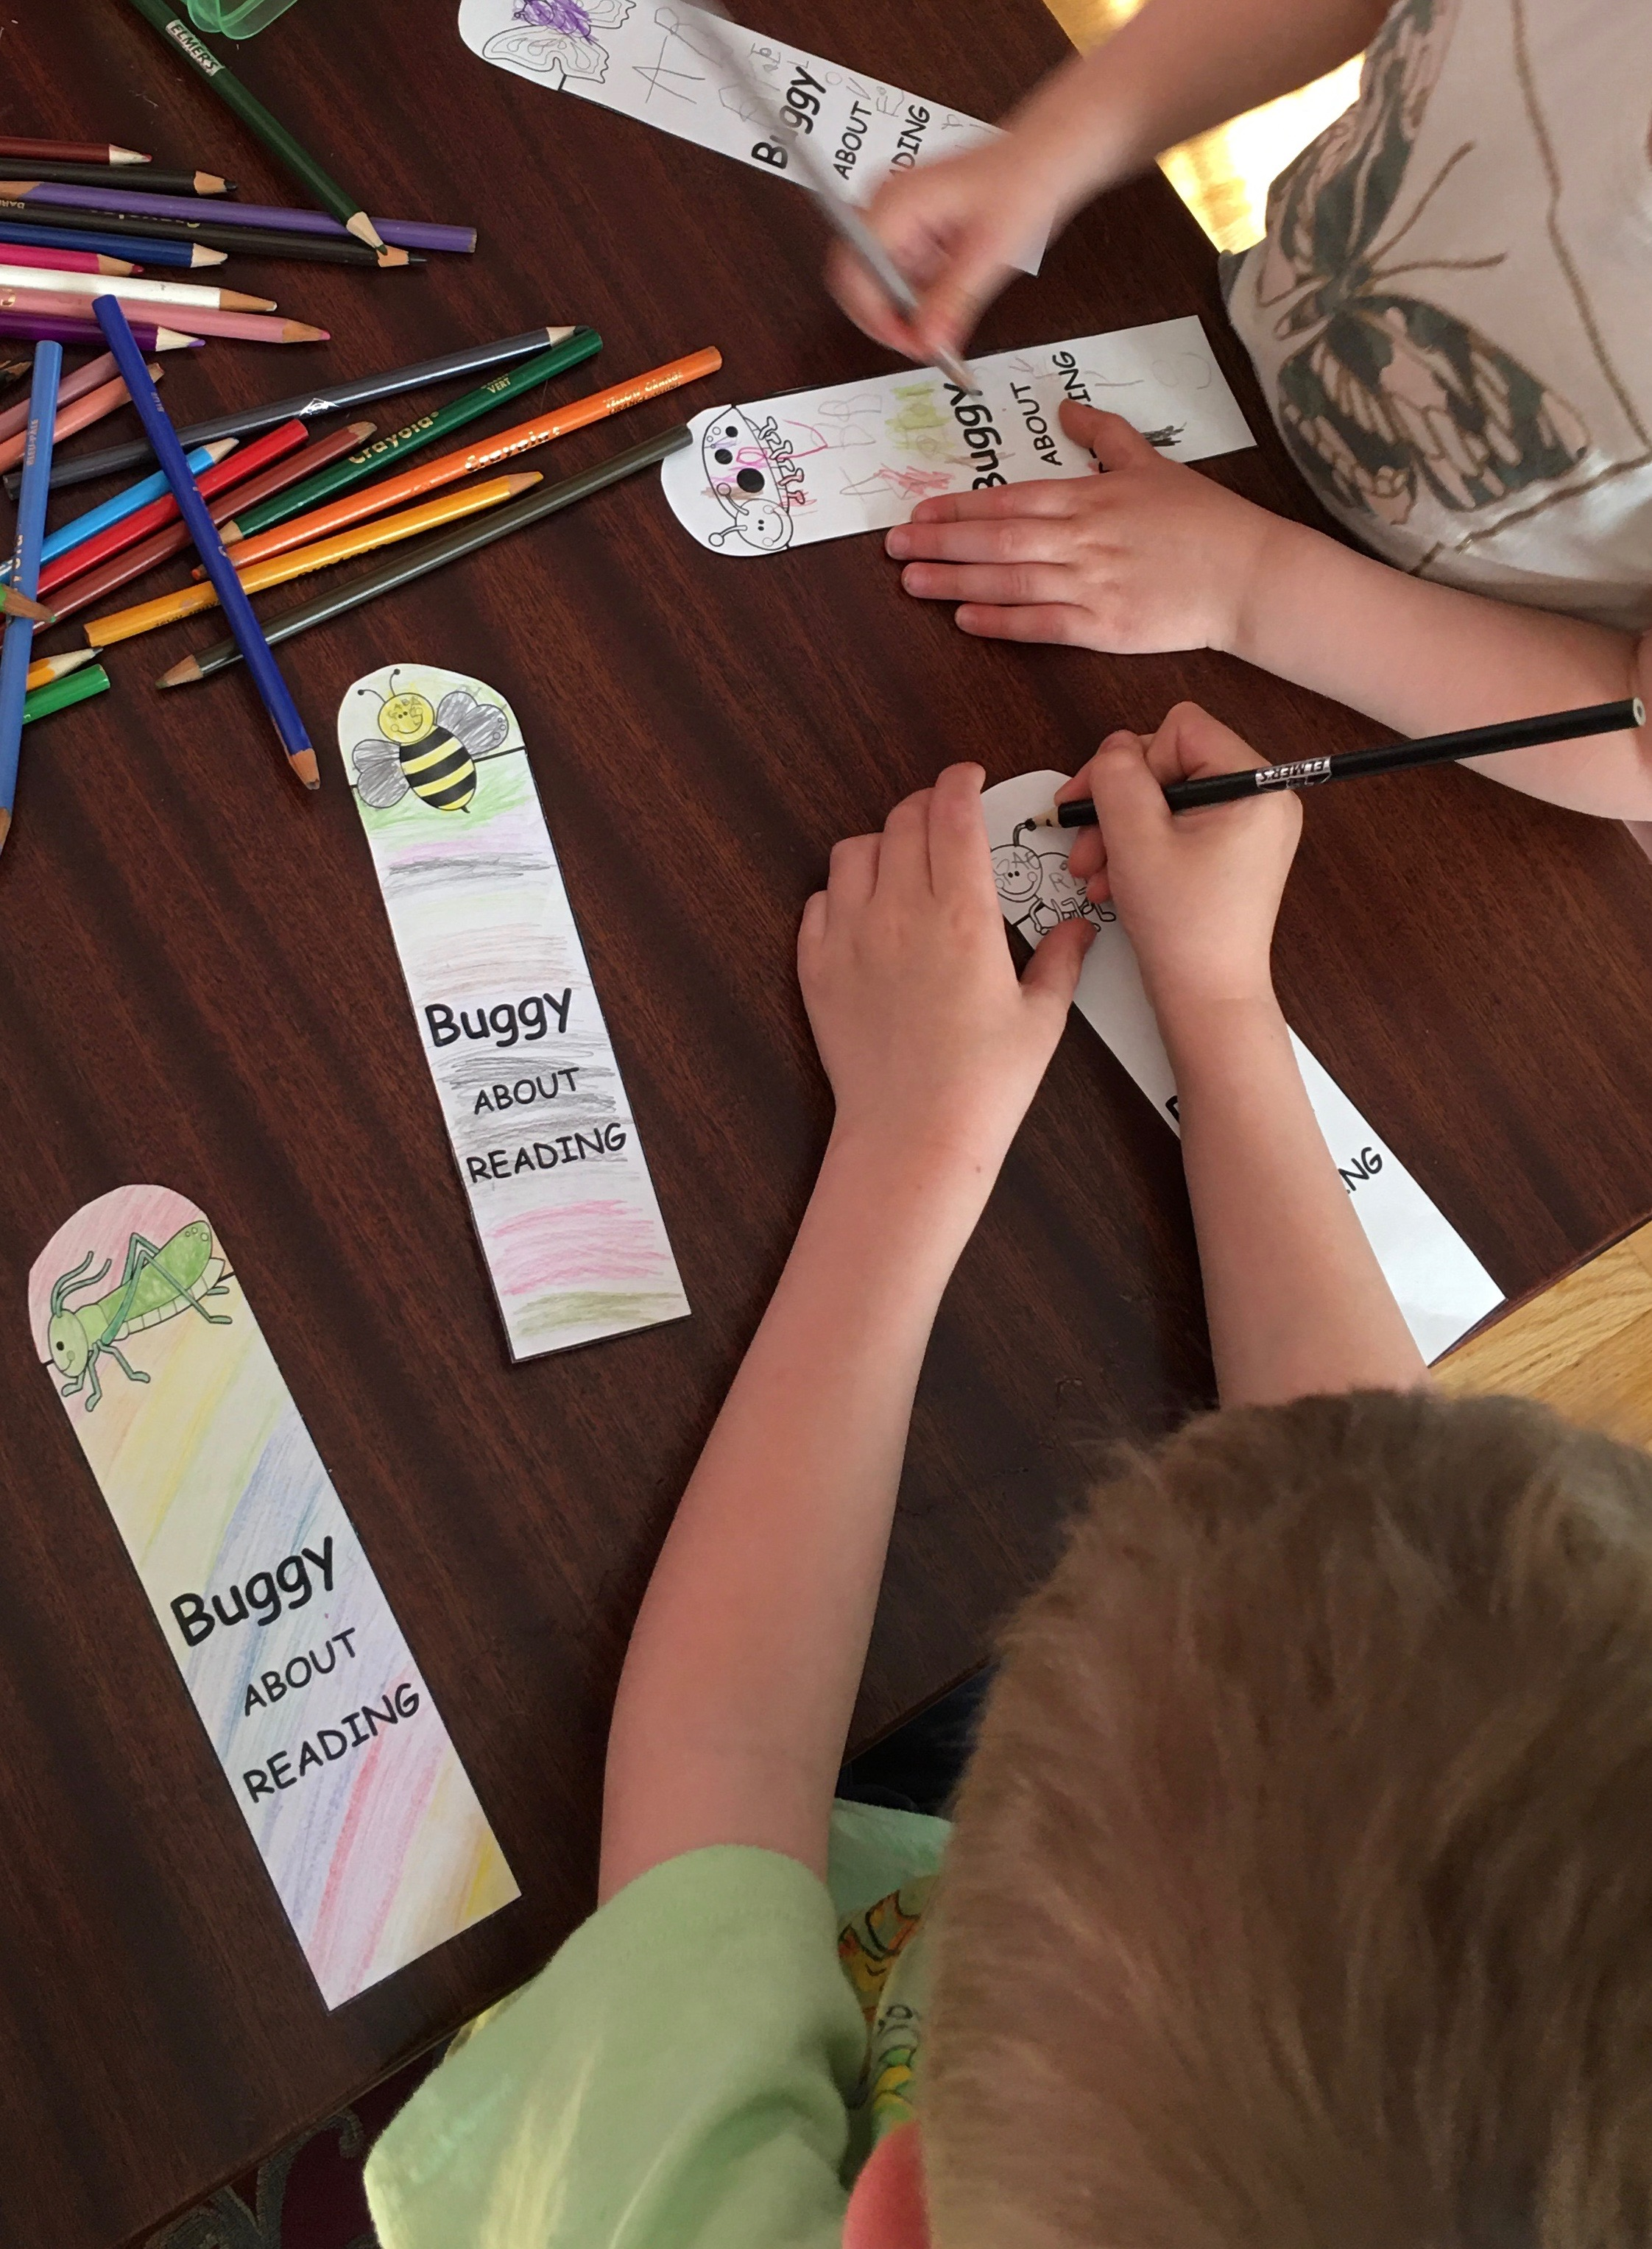 Two children are seeing colouring in paper bookmarks that read Buggy About Reading. Each bookmark has an insect on it.